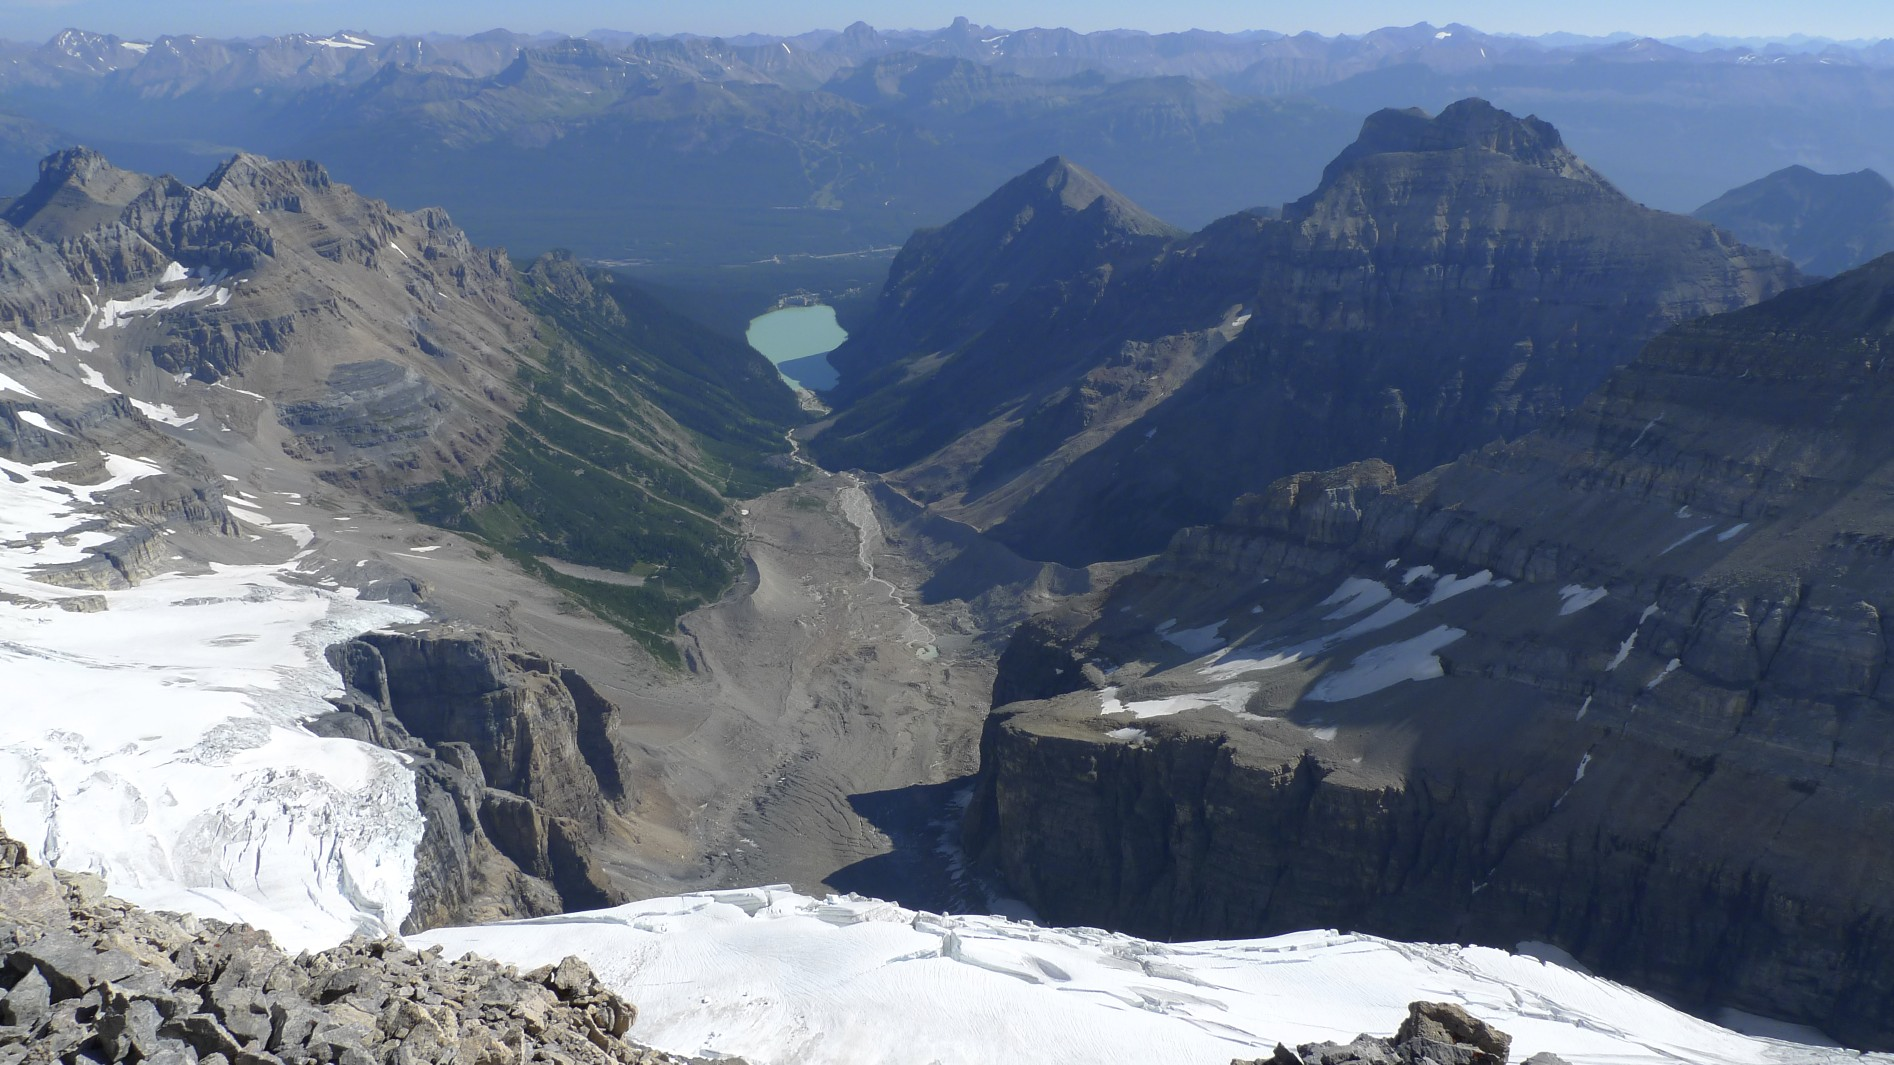 Lake Louise from the summit of Mt. Victoria